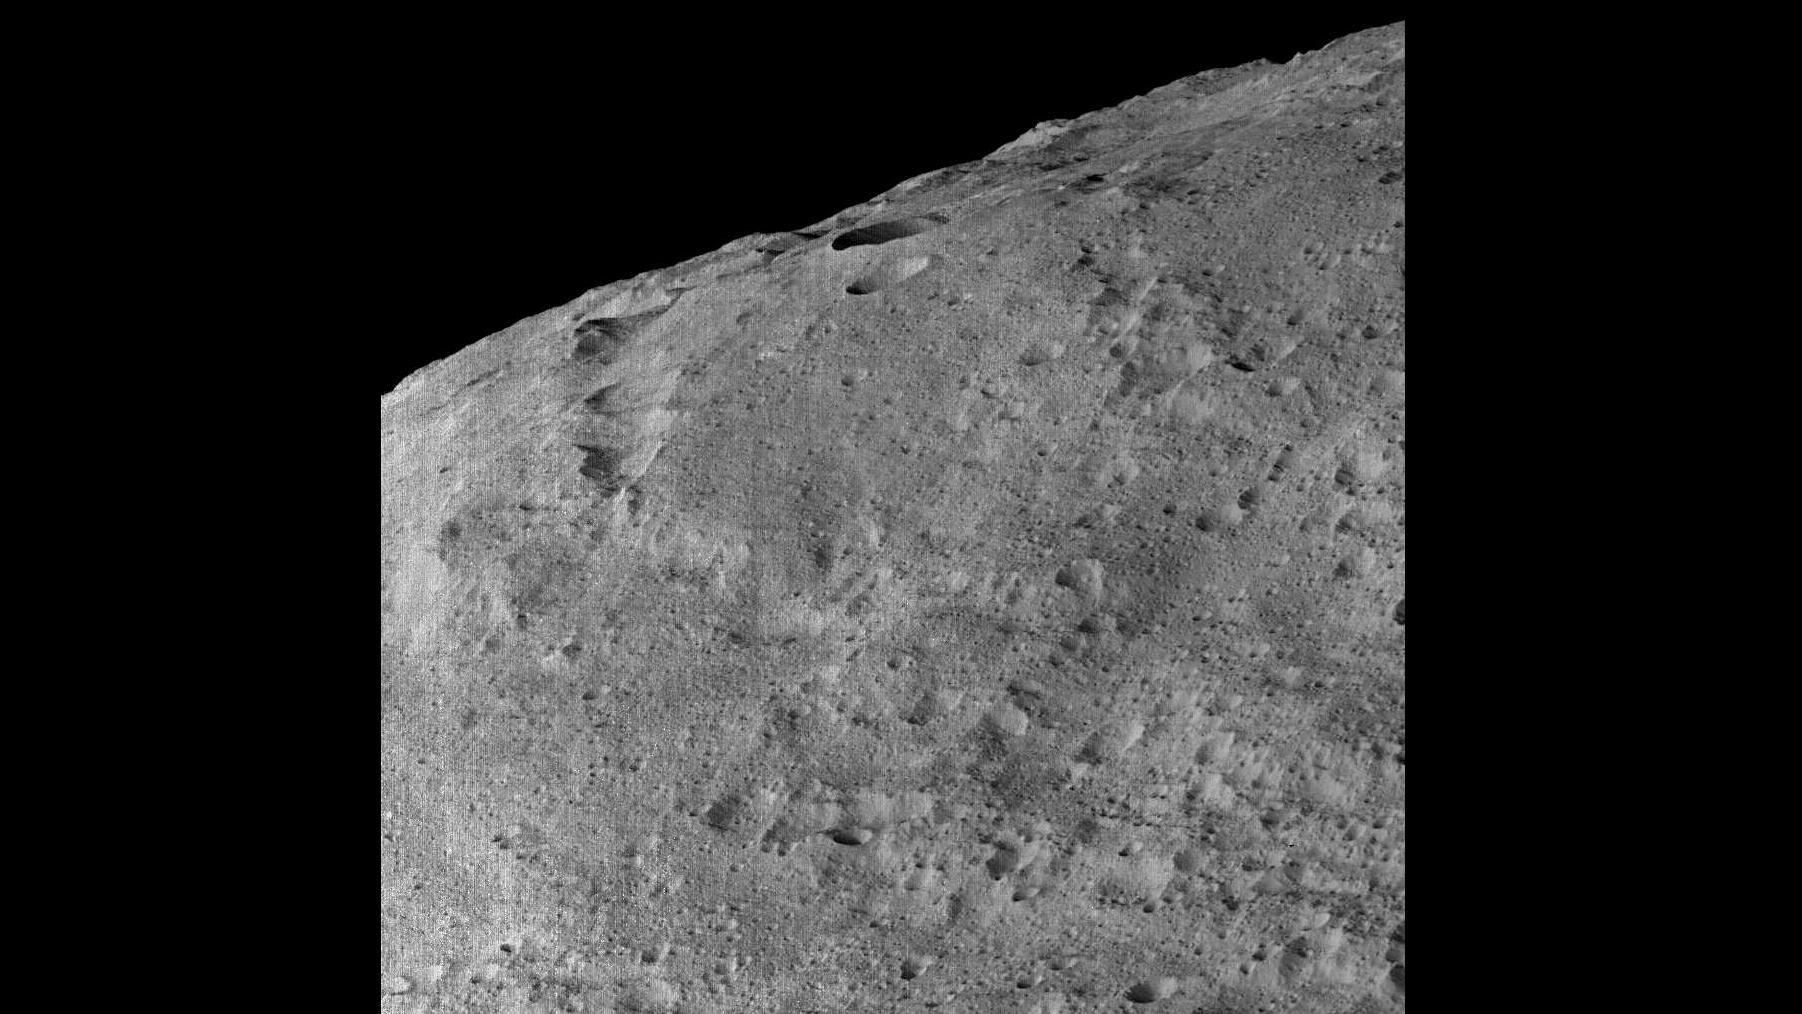 ceres chatrooms Ceres reached out and tenderly took dawn into its permanent gravitational embrace, marc rayman, dawn's chief engineer and mission director at jpl, said in a news briefing.